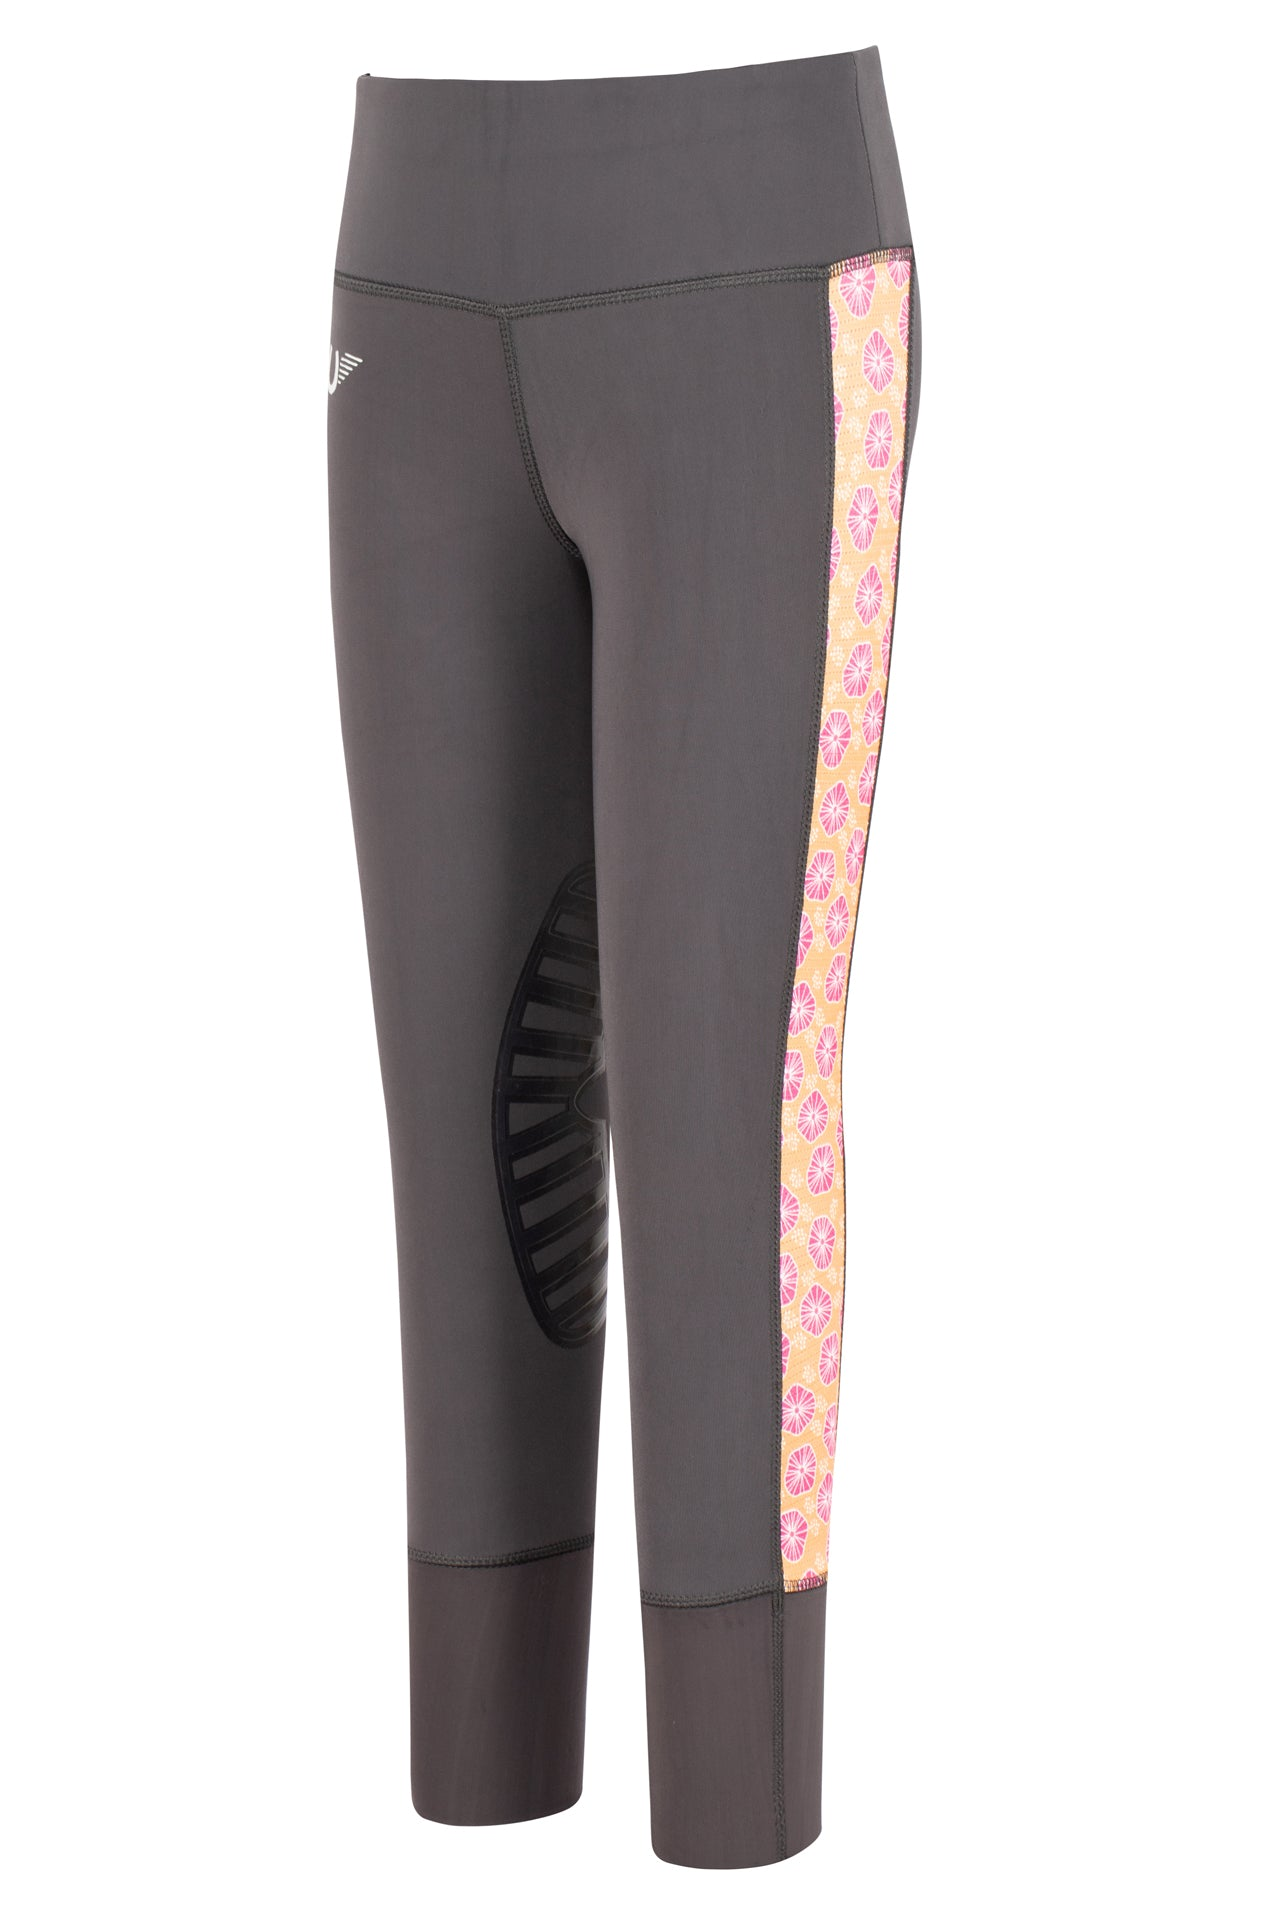 TuffRider Children's Athena EquiCool Riding Tights_853